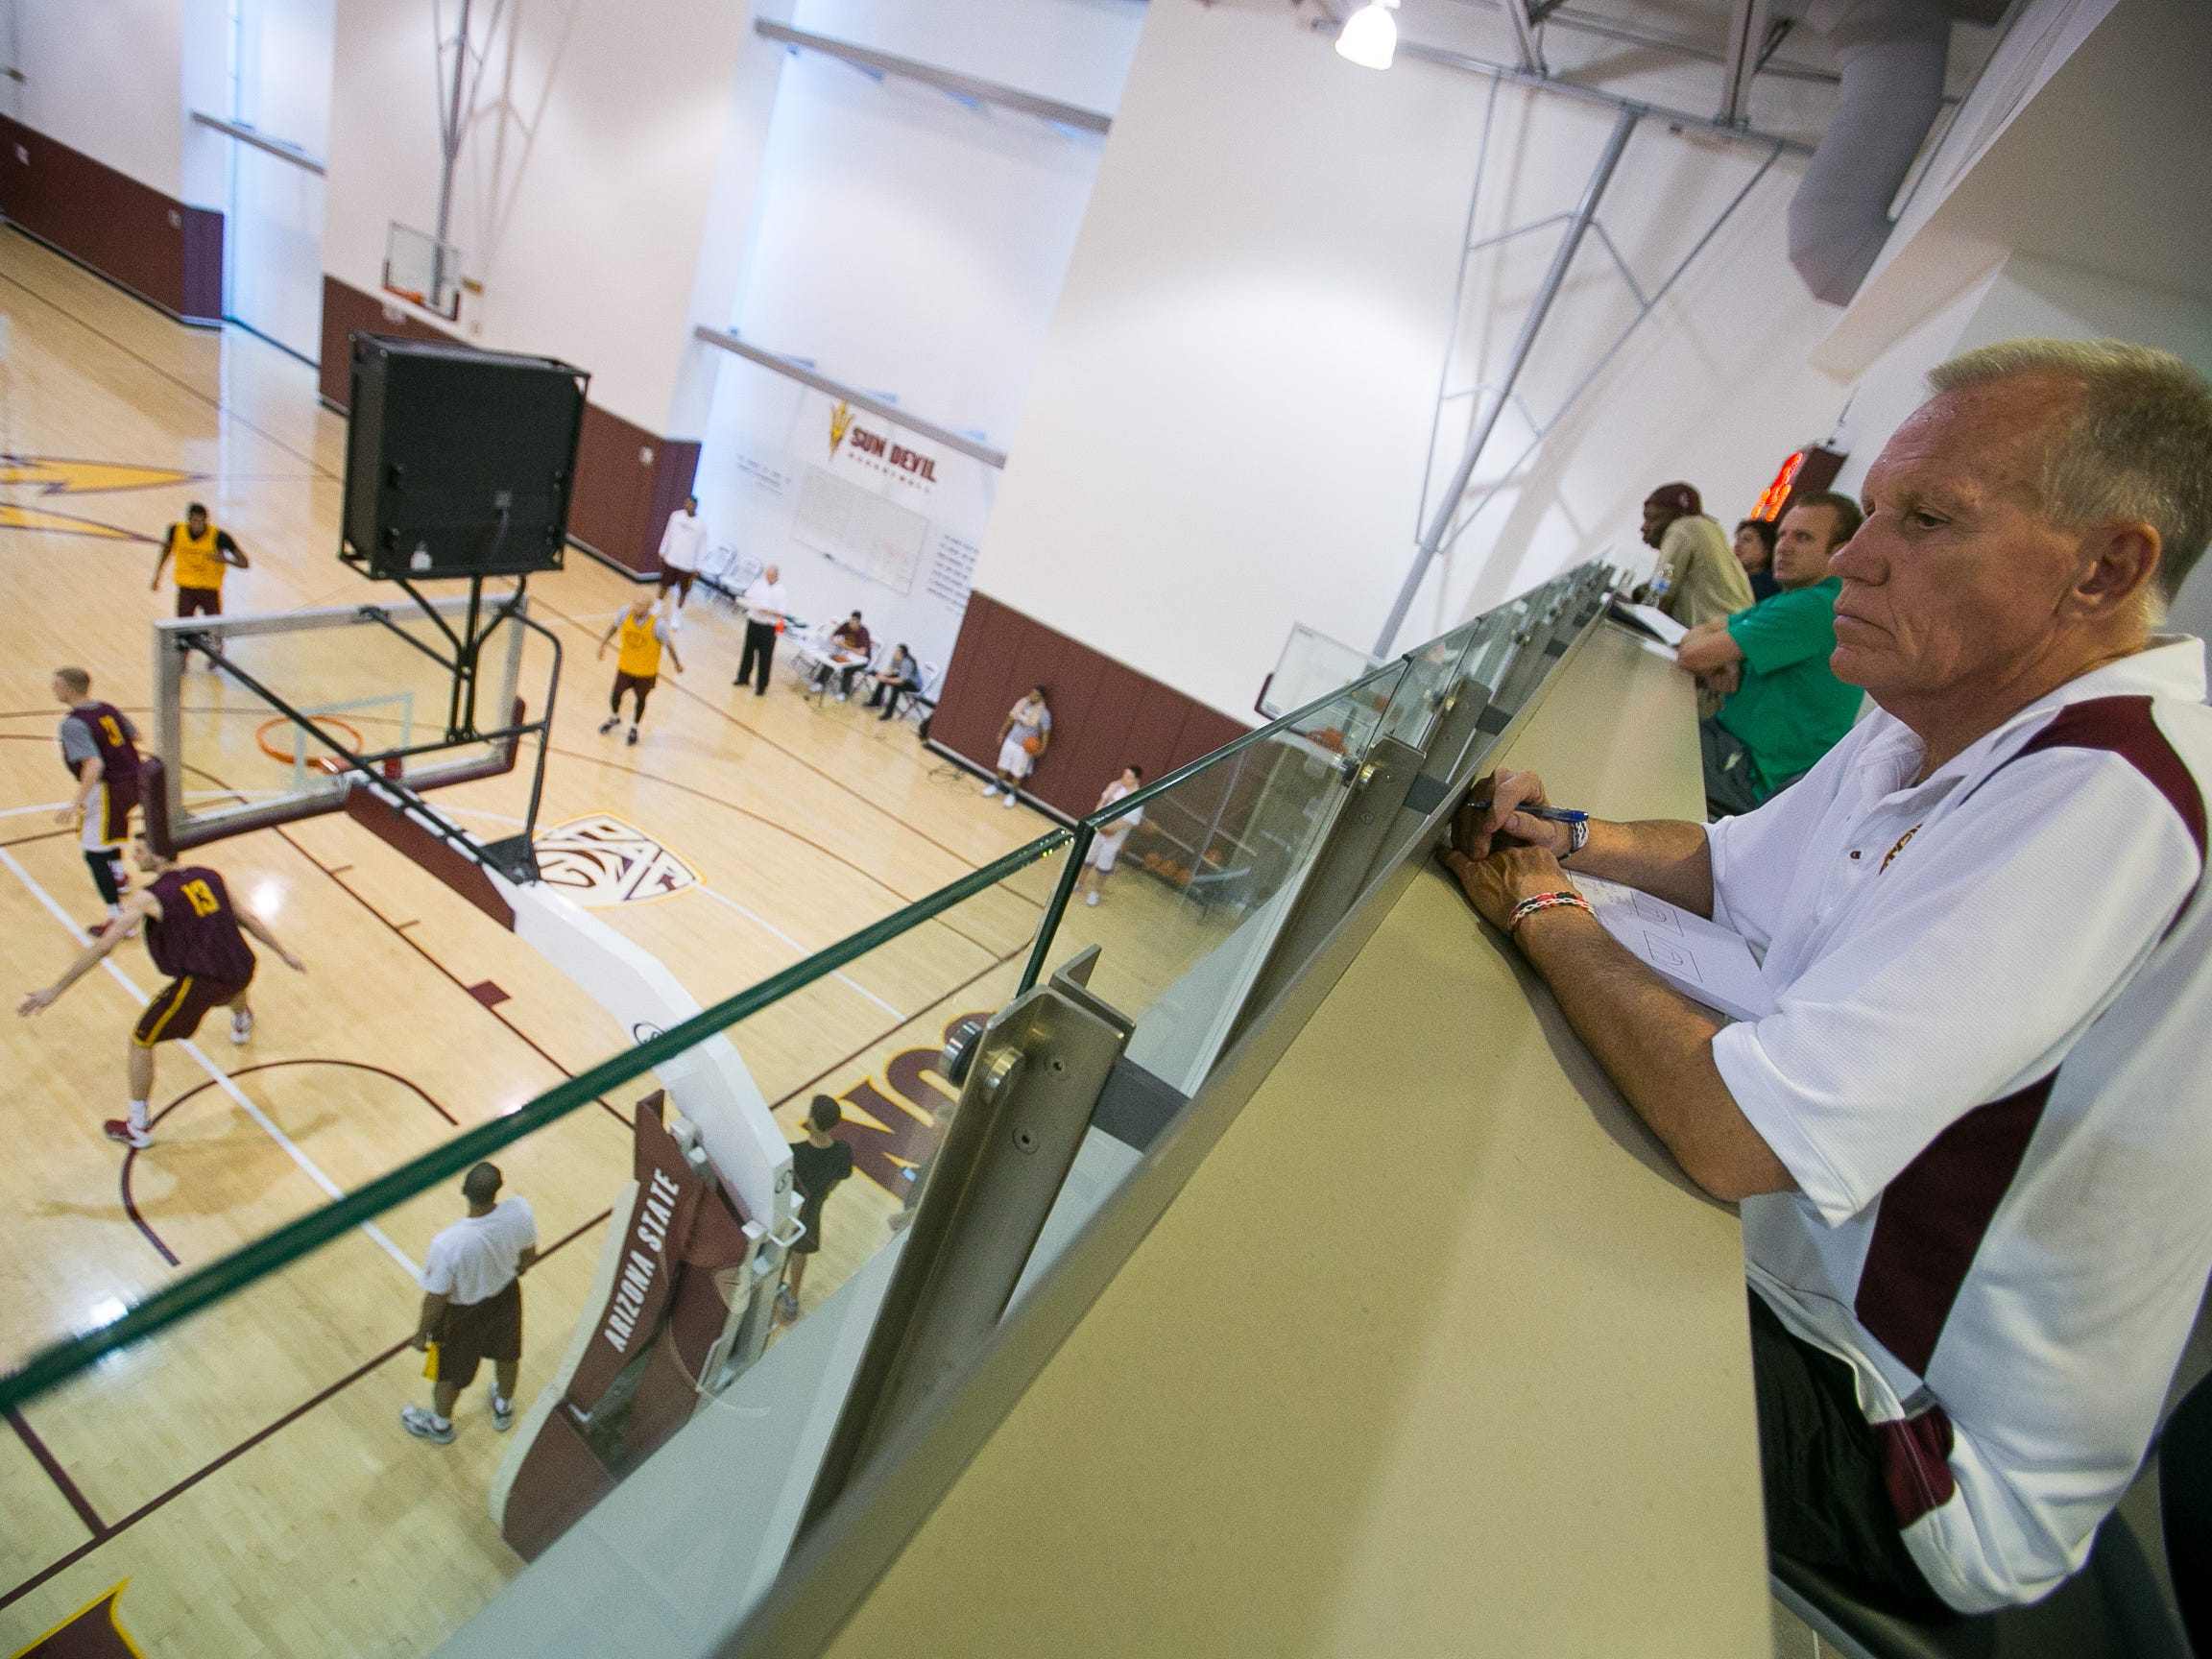 Former NBA player/coach and ESPN analyst Doug Collins takes notes during ASU men's basketball practice at the Weatherup Center in Tempe on Feb. 11, 2014. The basketball practice facility was completed in 2009.